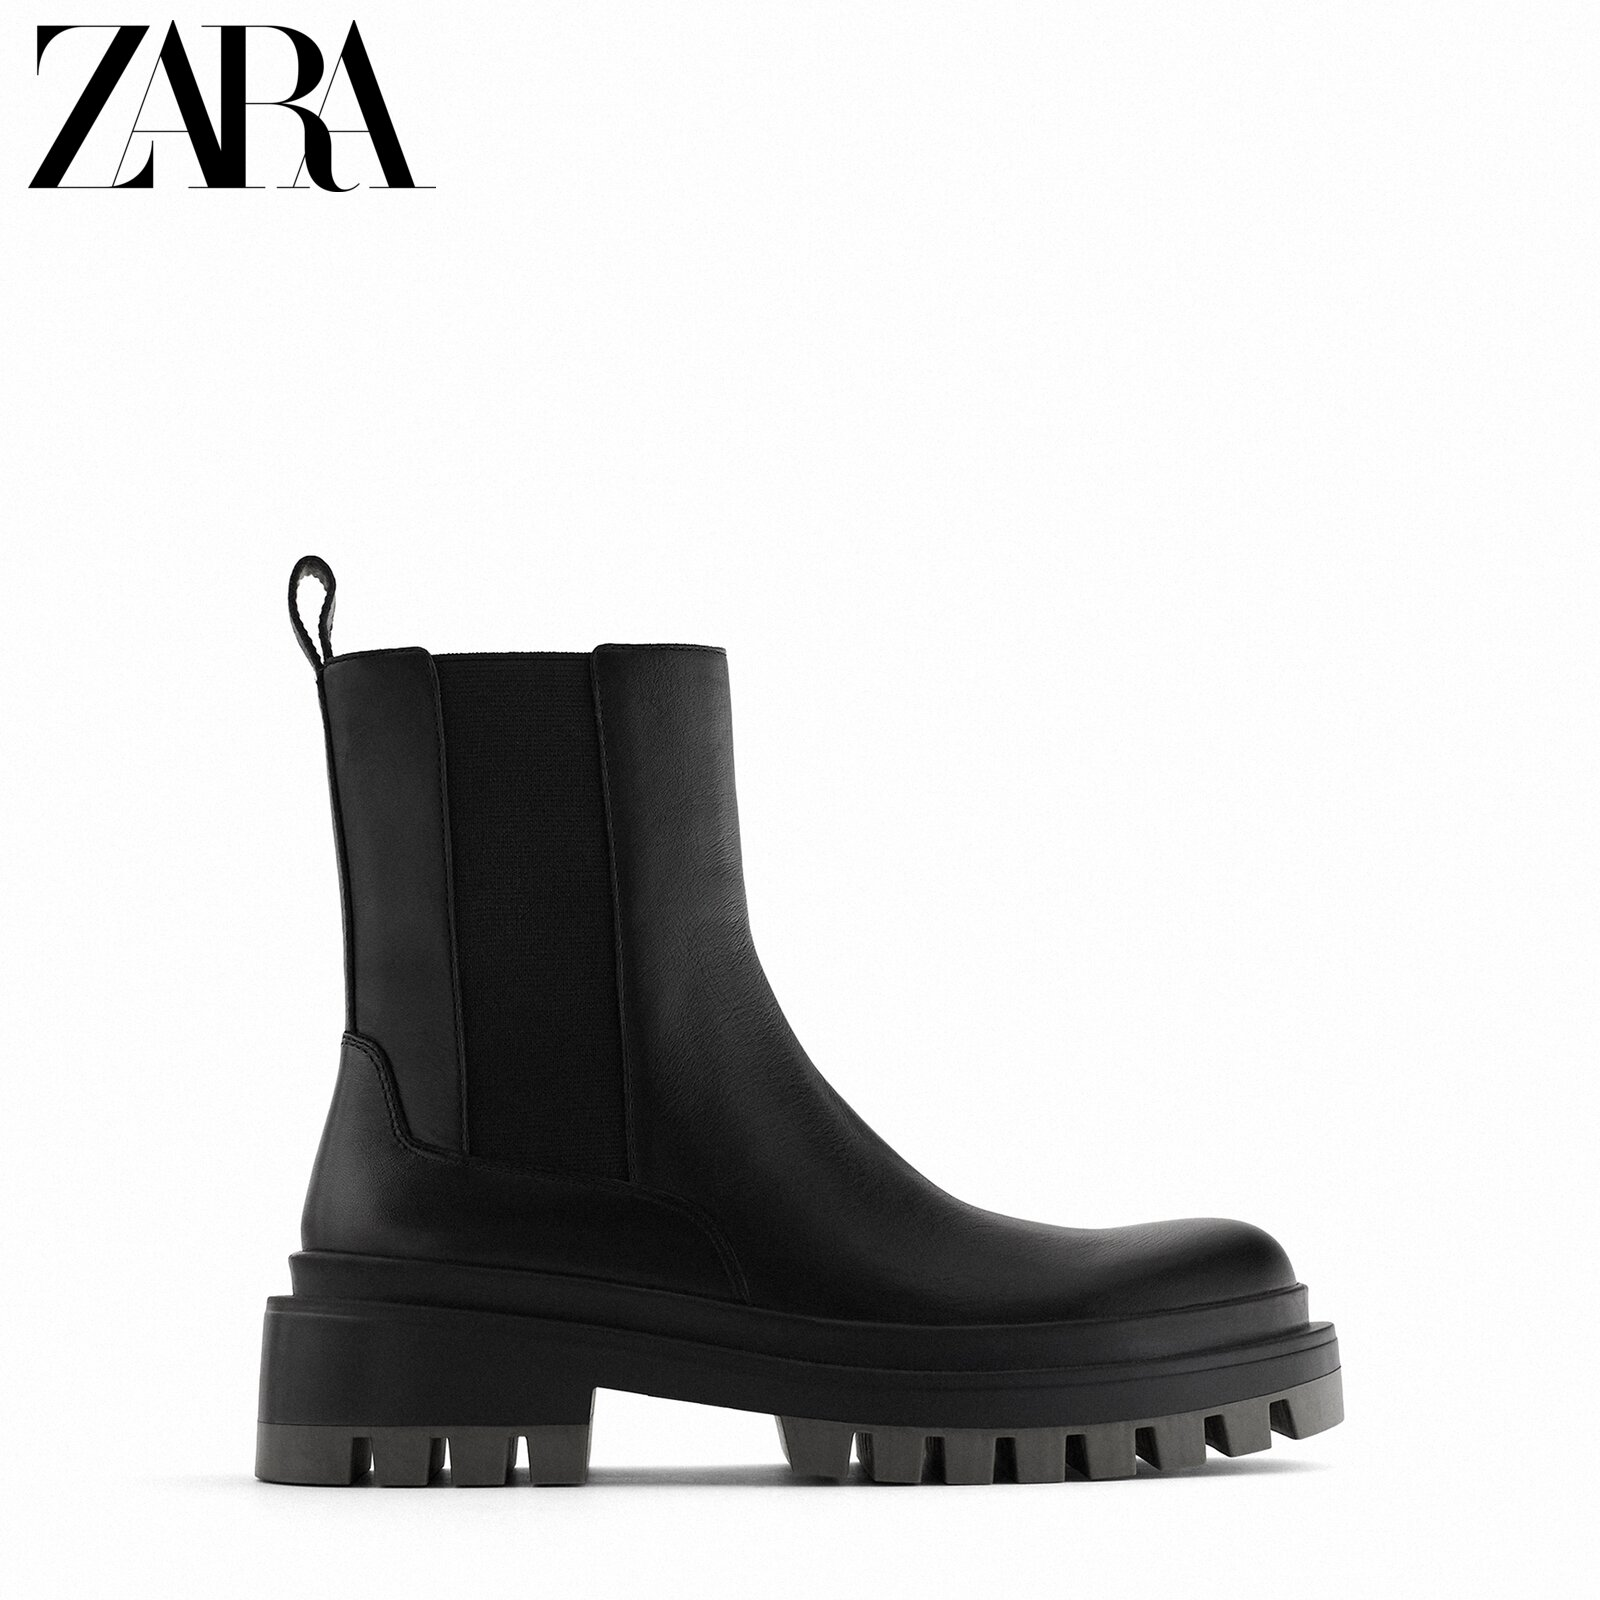 Zara new women's shoes black cow leather flat smoke tube boots Chelsea boots 11107610040